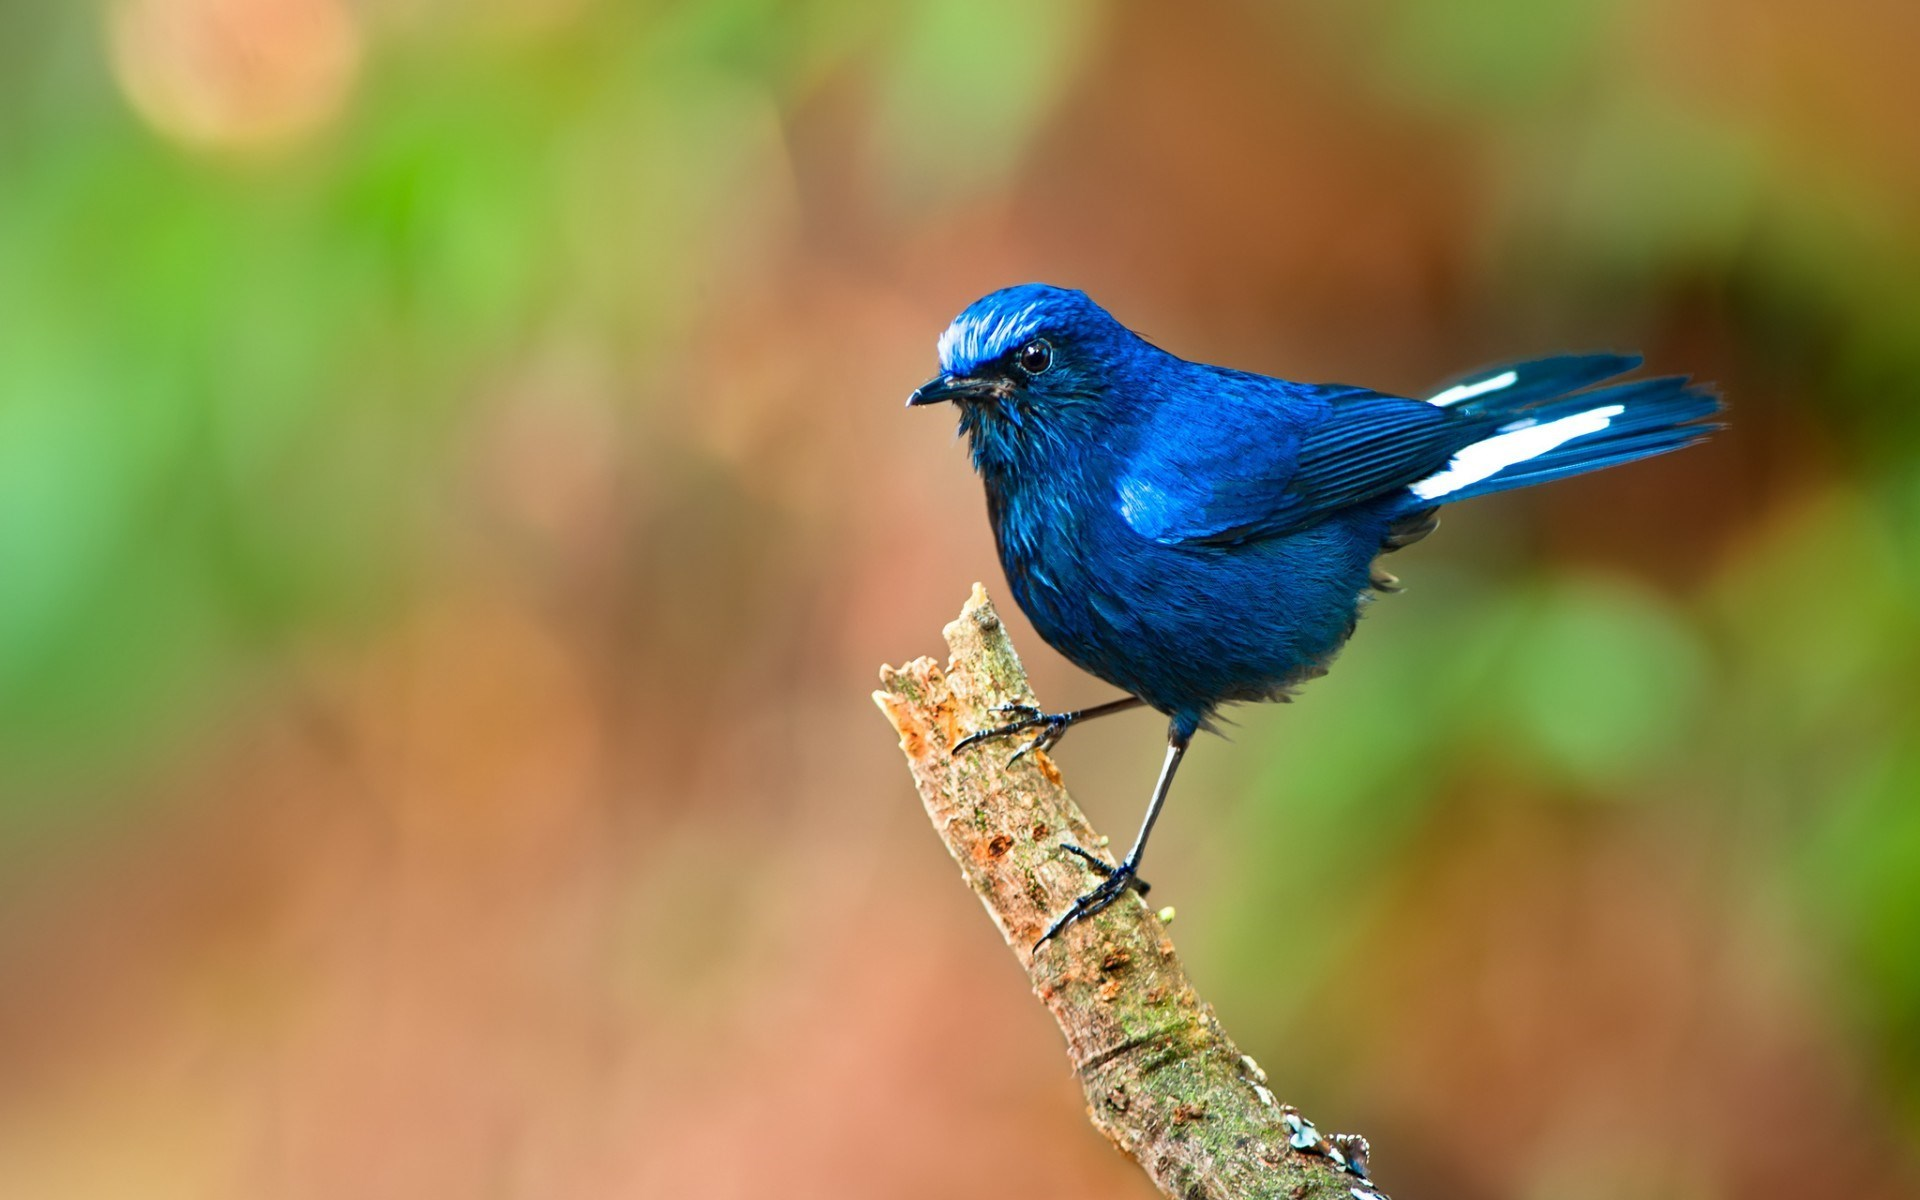 Blue Bird HD Wallpapers Live HD Wallpaper HQ Pictures 1920x1200